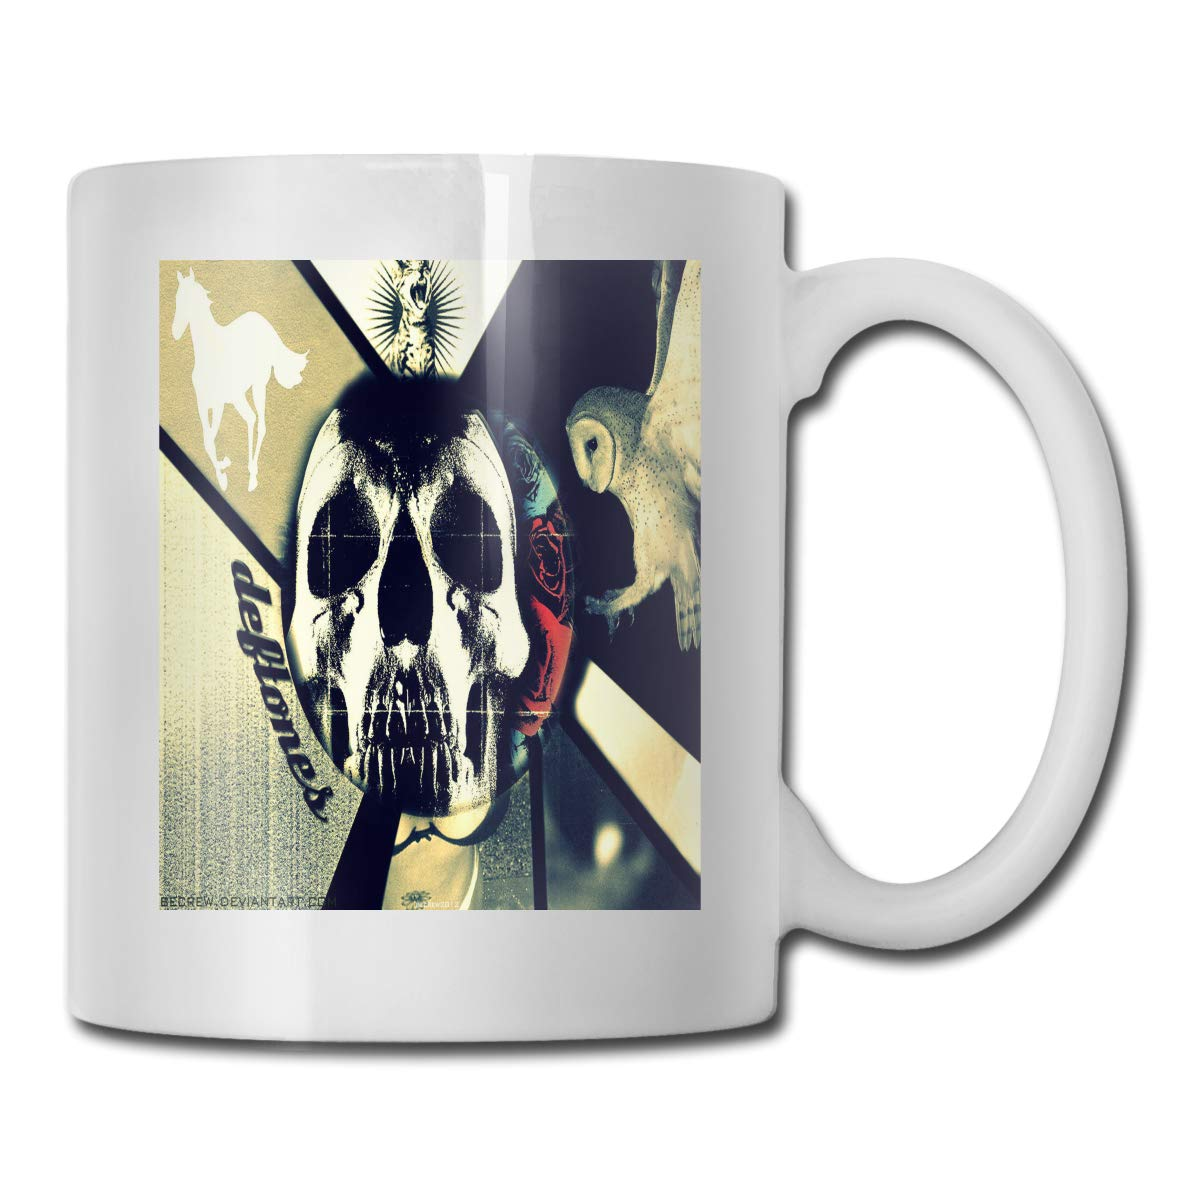 Amazoncom Larrygthatcher Deftones Woman Or Mans Cup Office Leisure